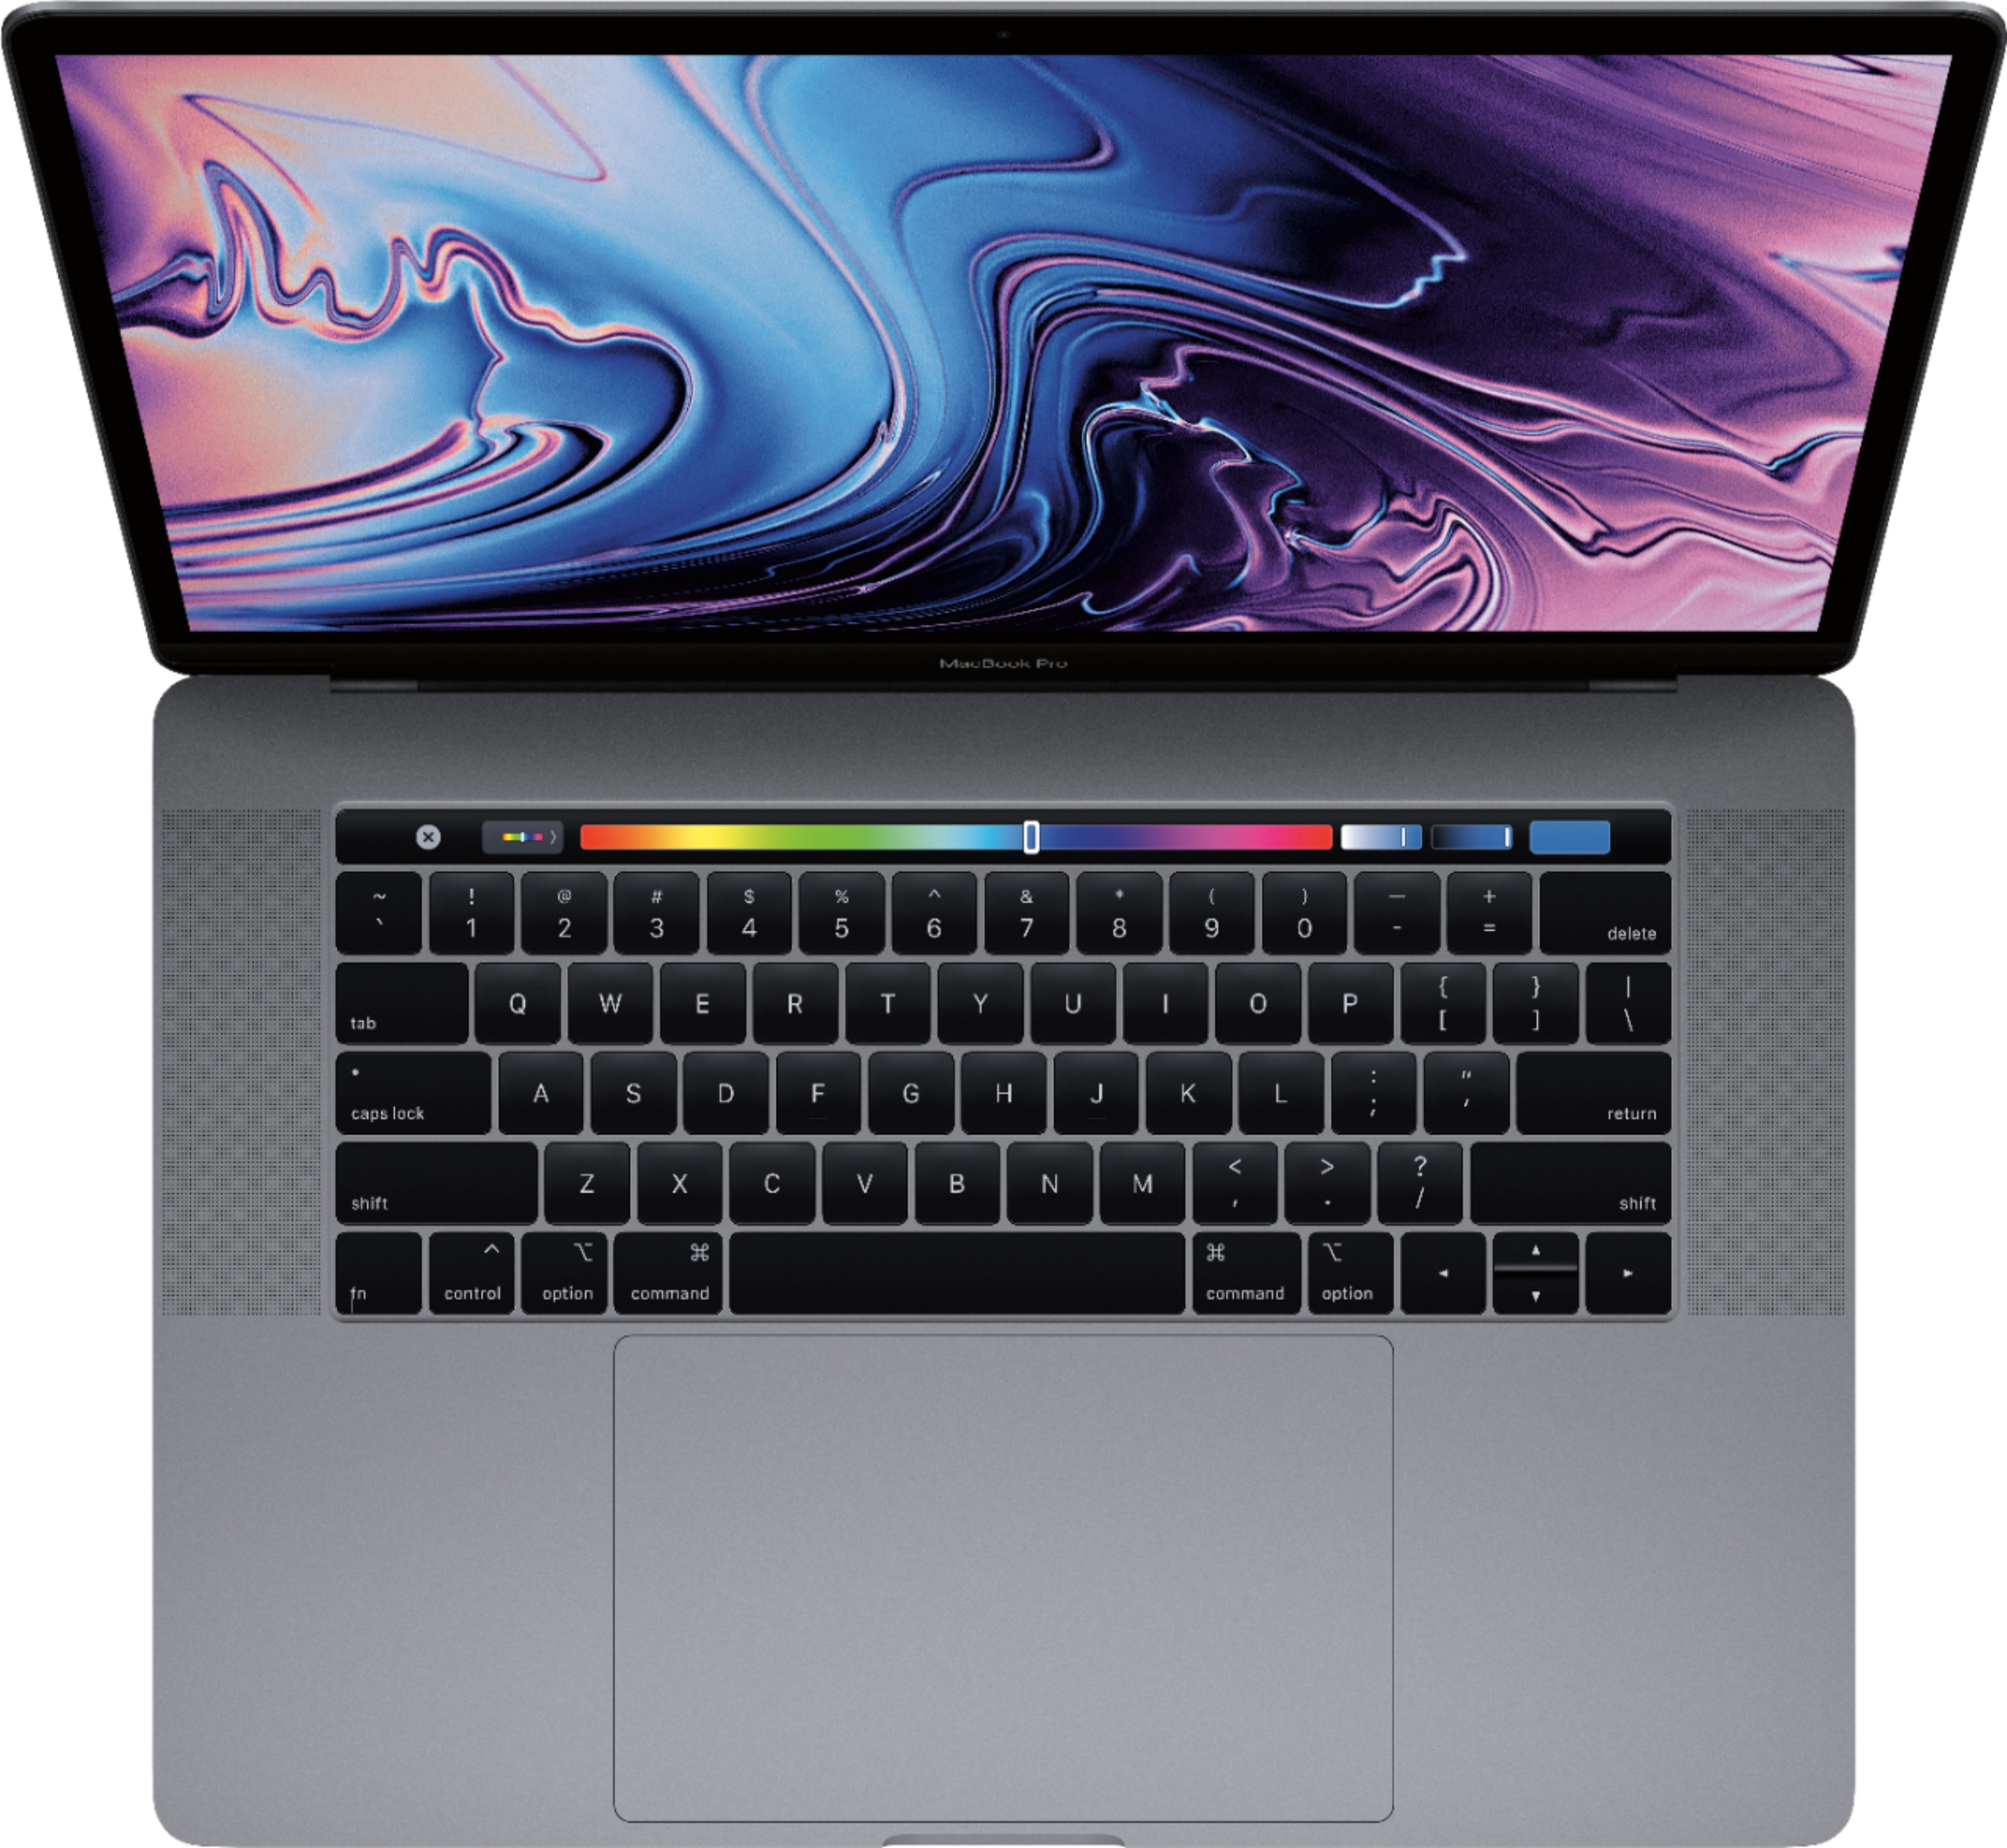 """Alt View Zoom 12. Apple - MacBook Pro 15.4"""" Display with Touch Bar - Intel Core i9 - 32GB Memory - AMD Radeon Pro 555X - 1TB SSD - Space Gray."""